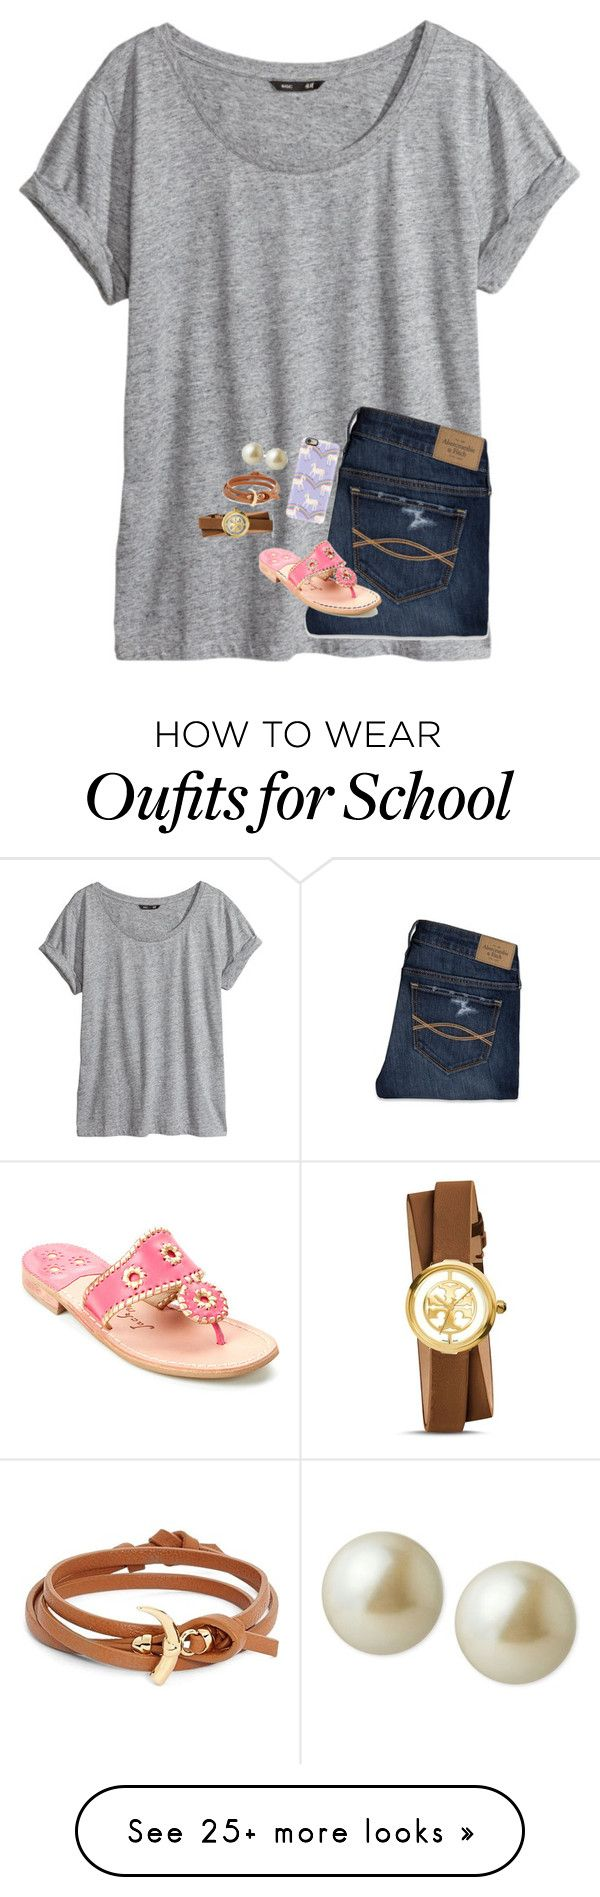 """So sick of school//Ava"" by preppy-group-account on Polyvore featuring H&M, Abercrombie & Fitch, Casetify, Jack Rogers, Carolee and Tory Burch"